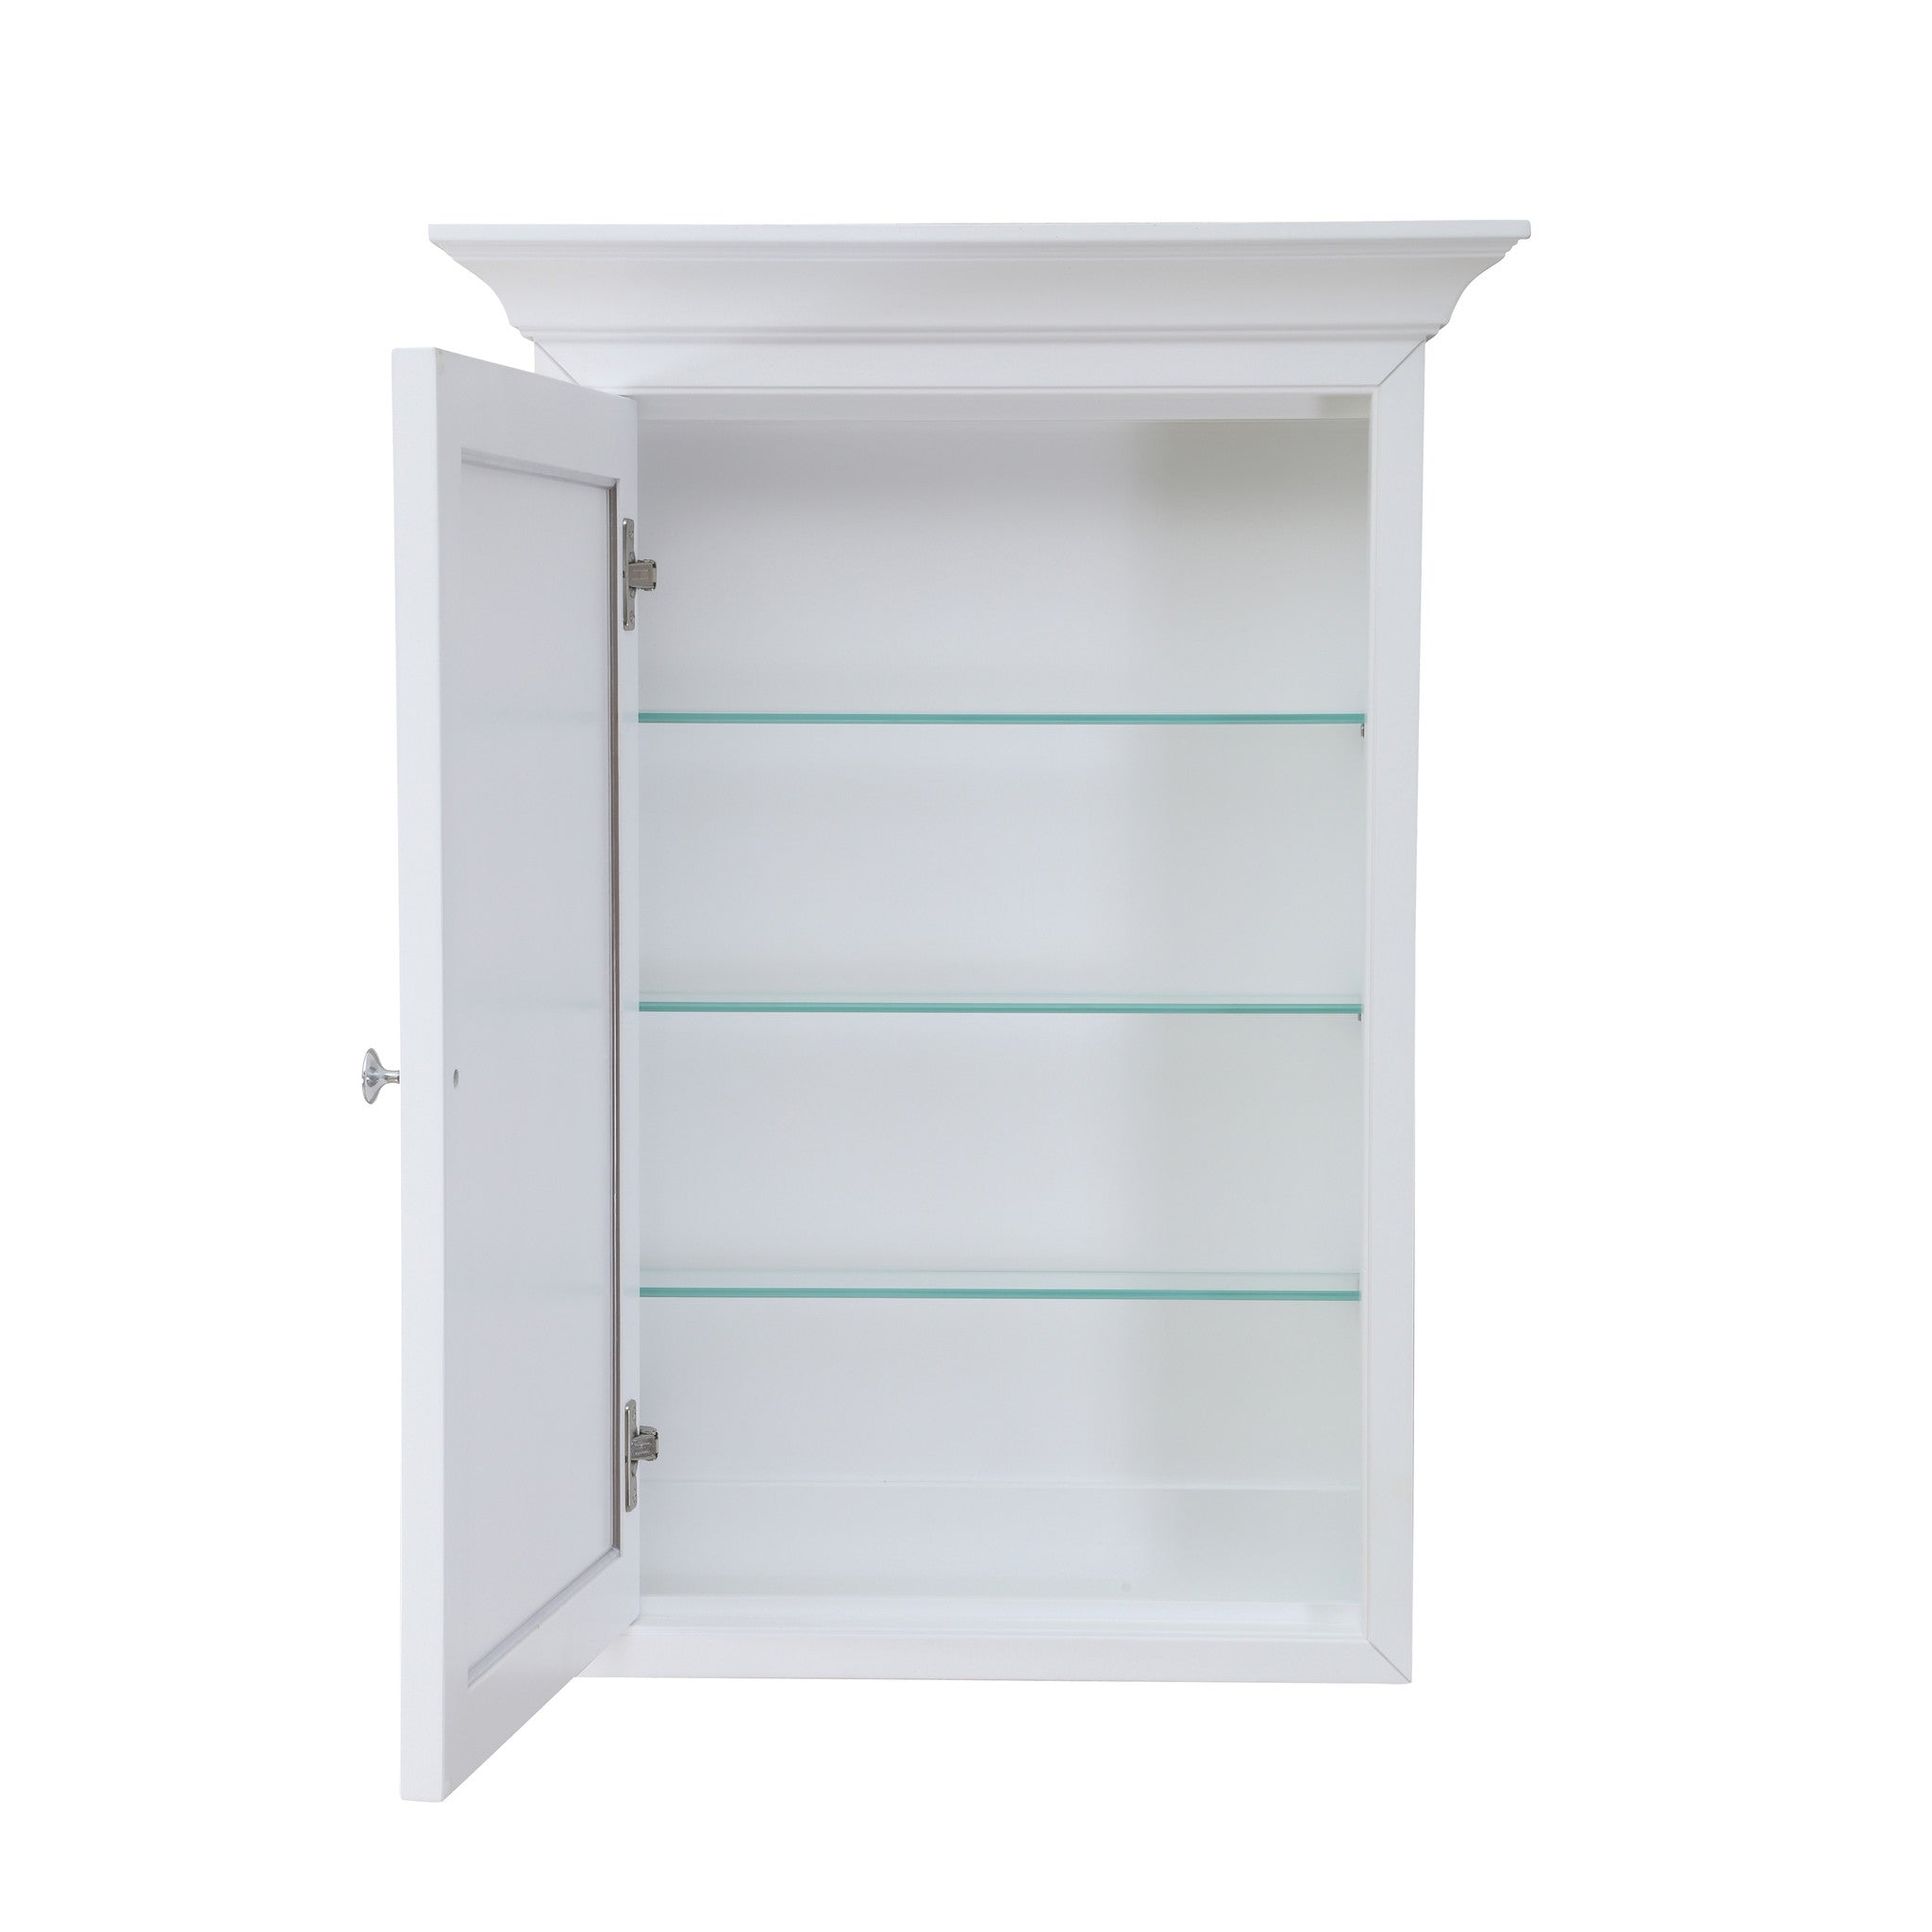 Newport Wall-Mounted Medicine Cabinet (White